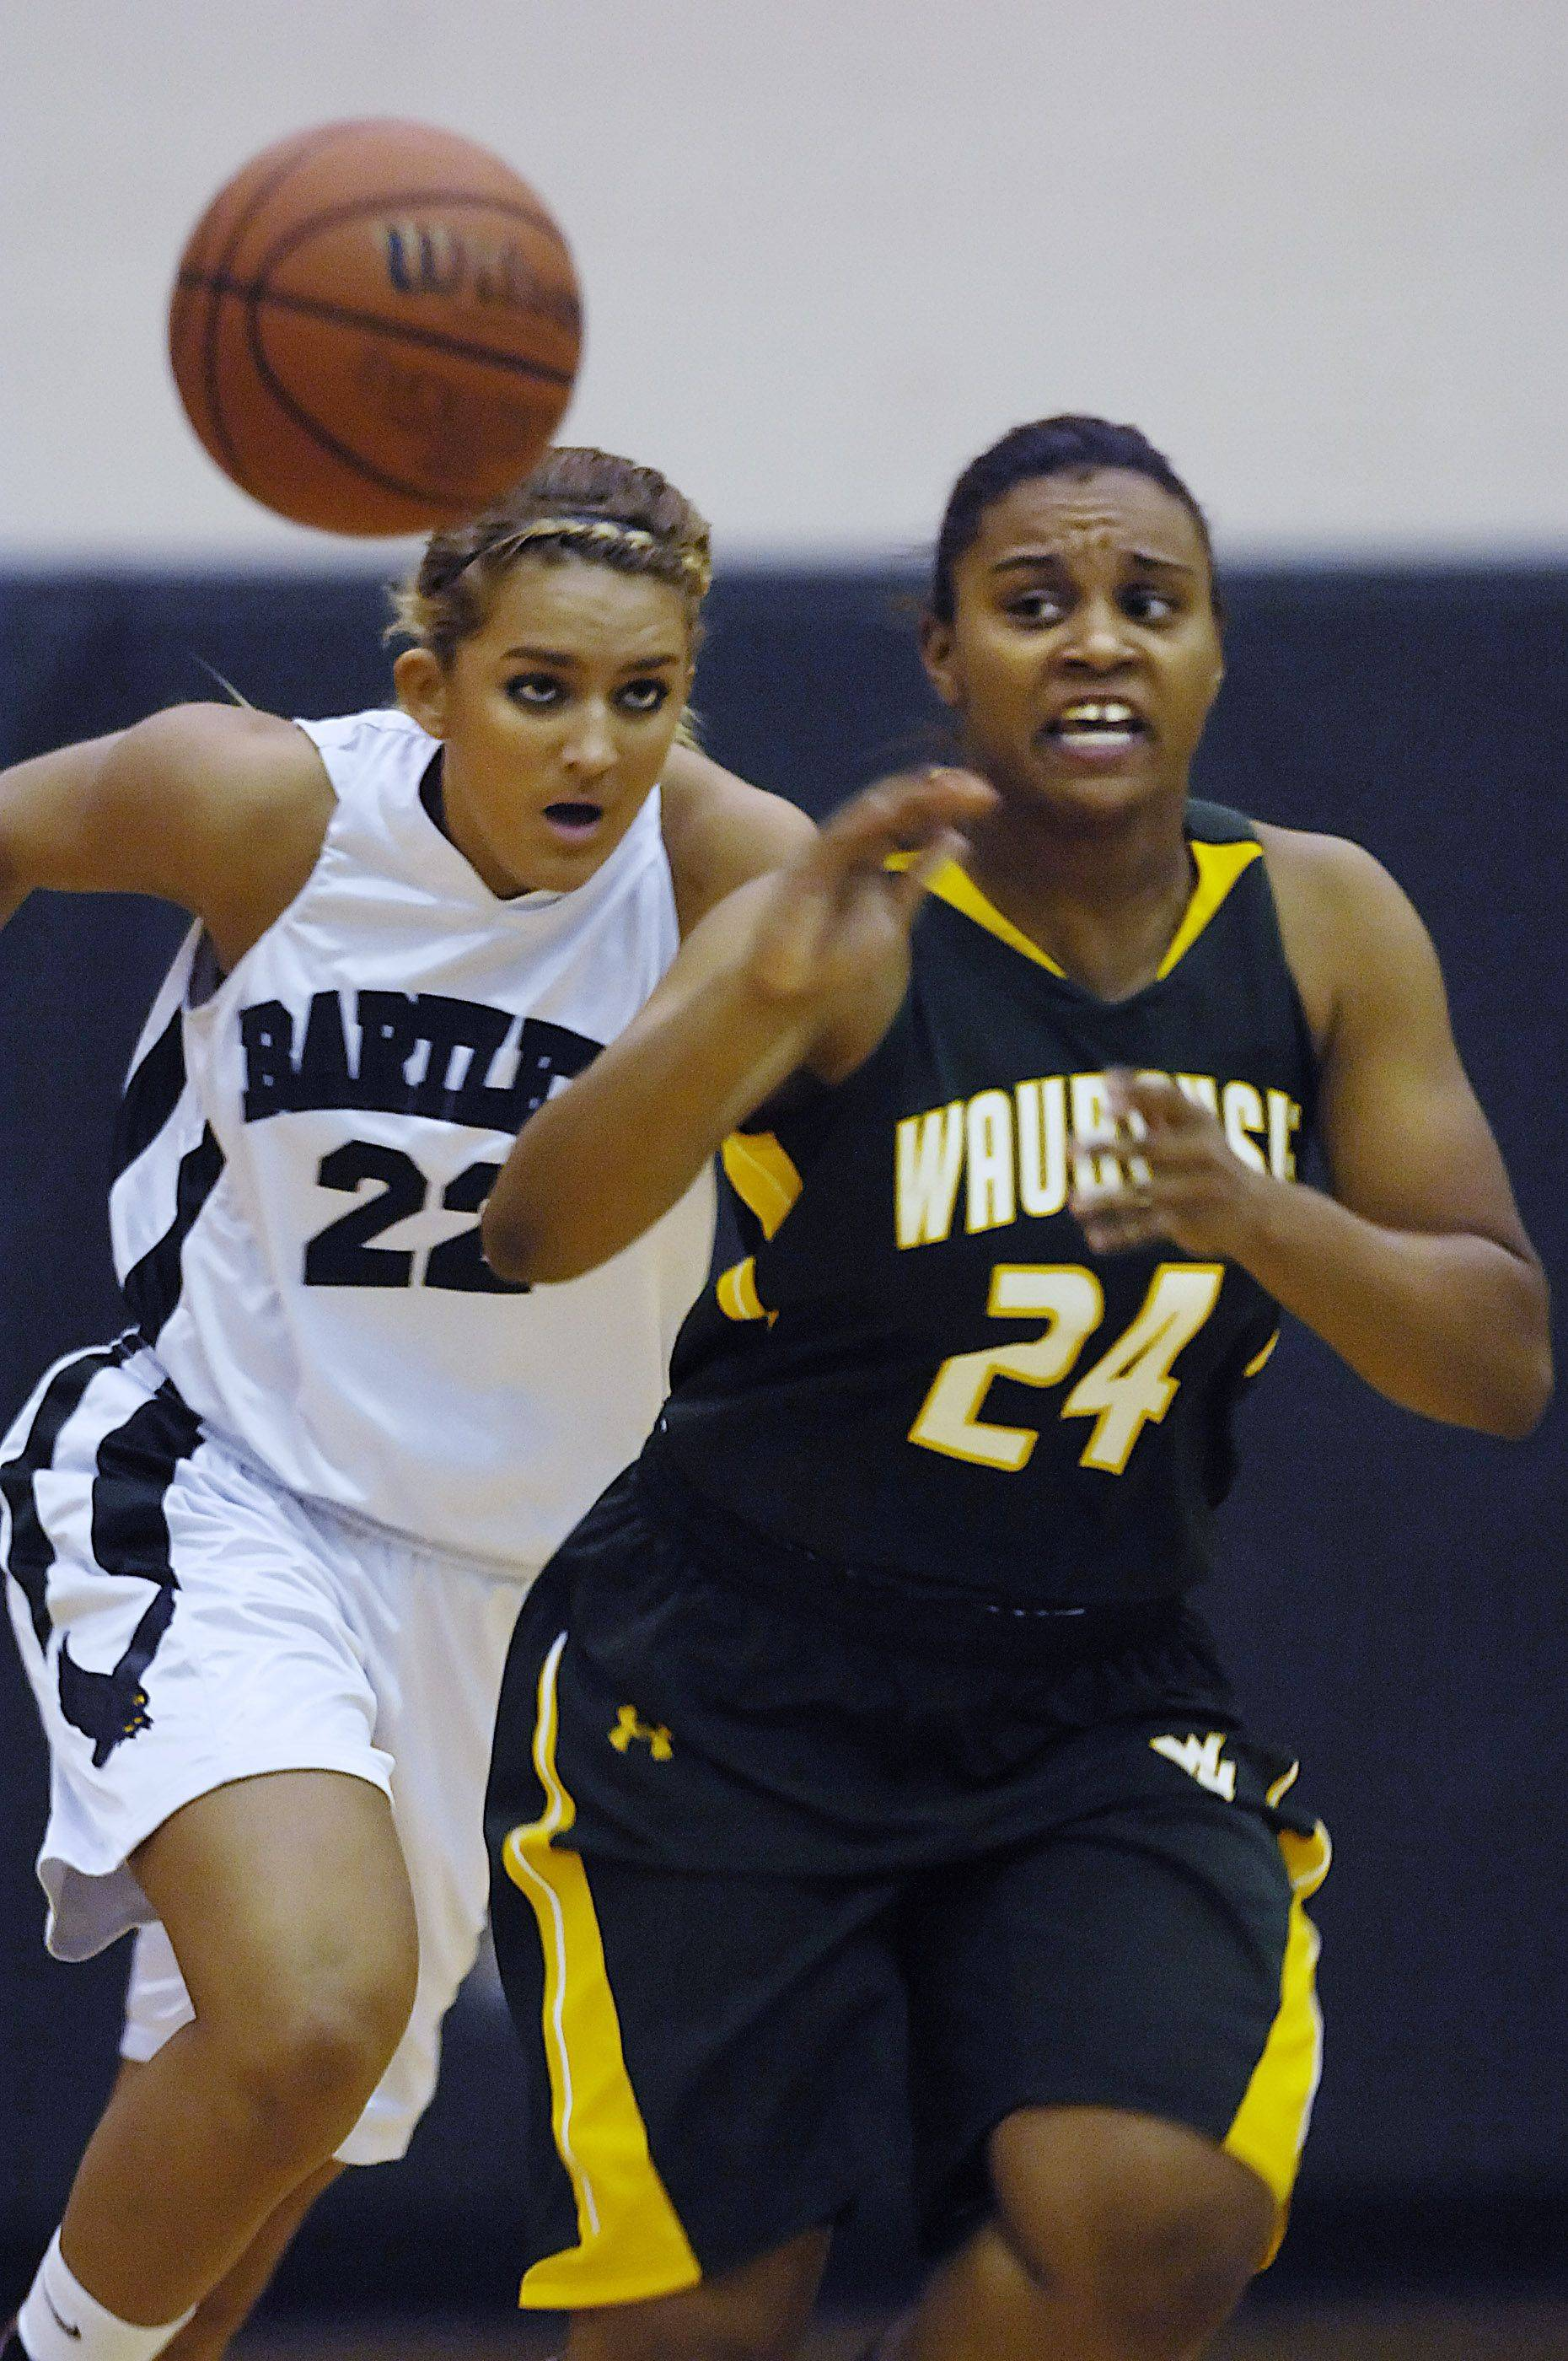 Waubonsie Valley's Tanysha Gardner-Walls passes the ball as Bartlett's Haley Videckis chases Tuesday.